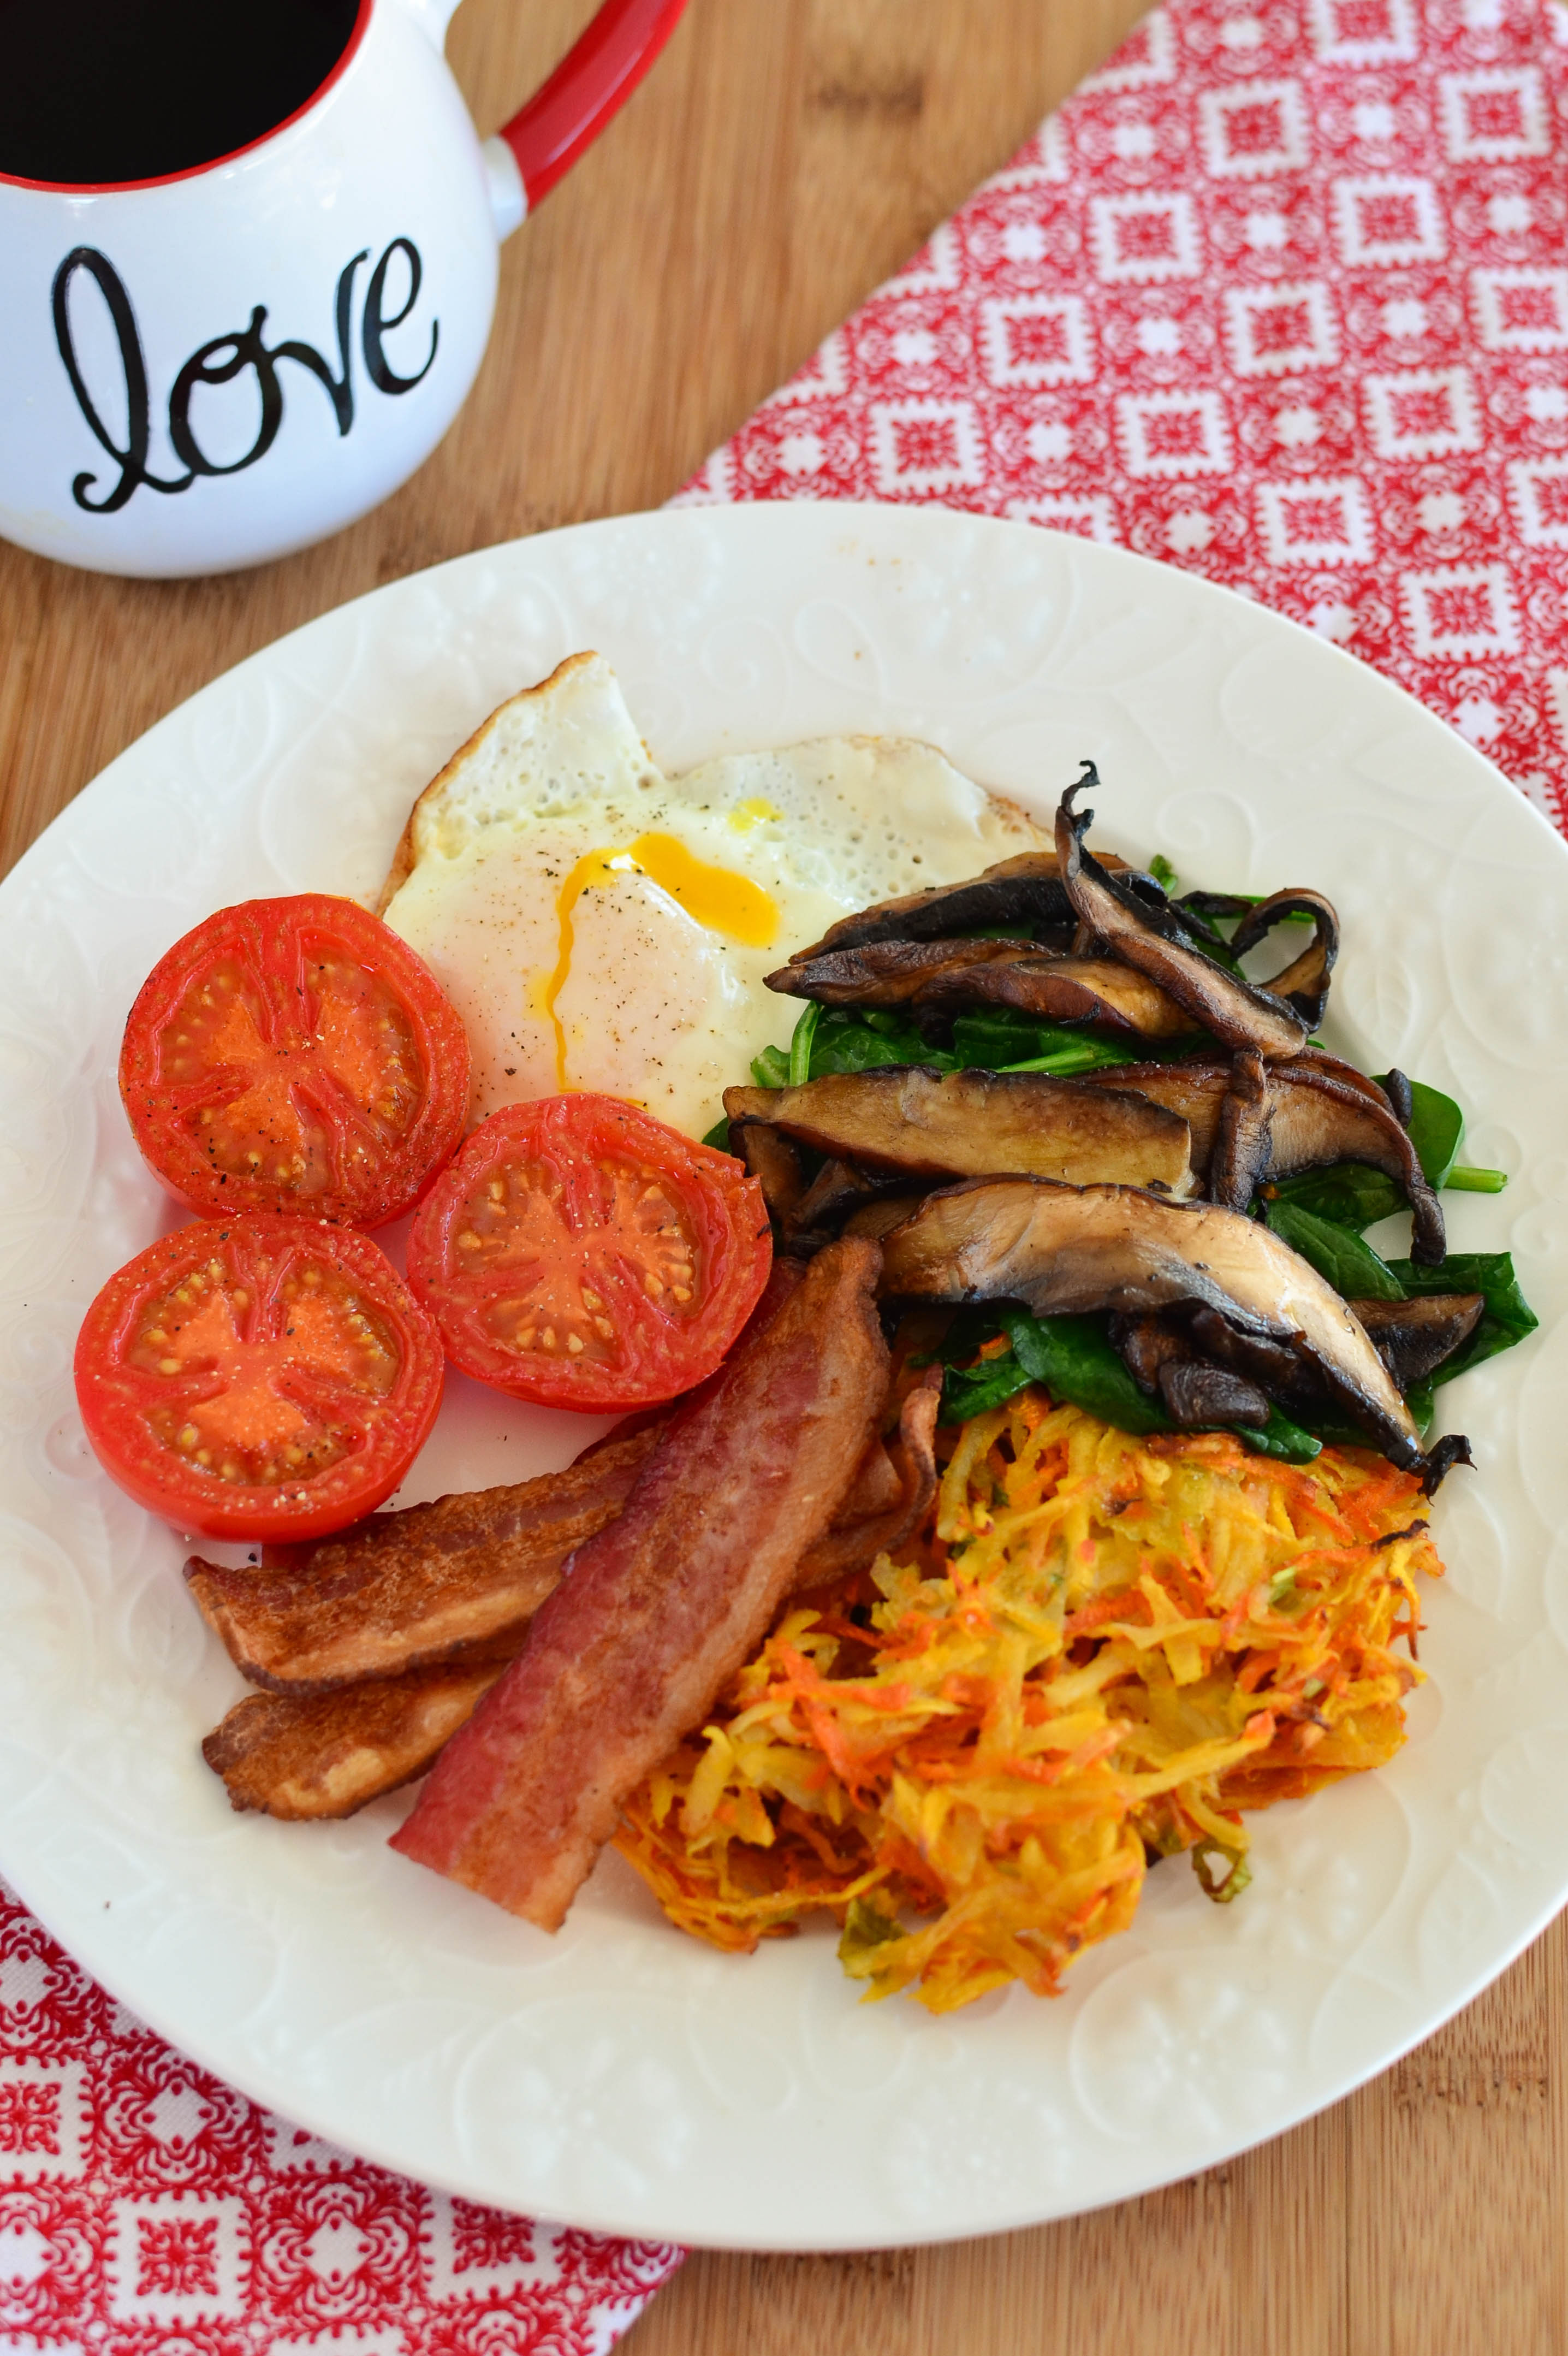 Slimming Eats - Carrot, Parsnip and Potato Hash - gluten free, dairy free, whole30, paleo, vegetarian, Slimming World and Weight Watchers friendly